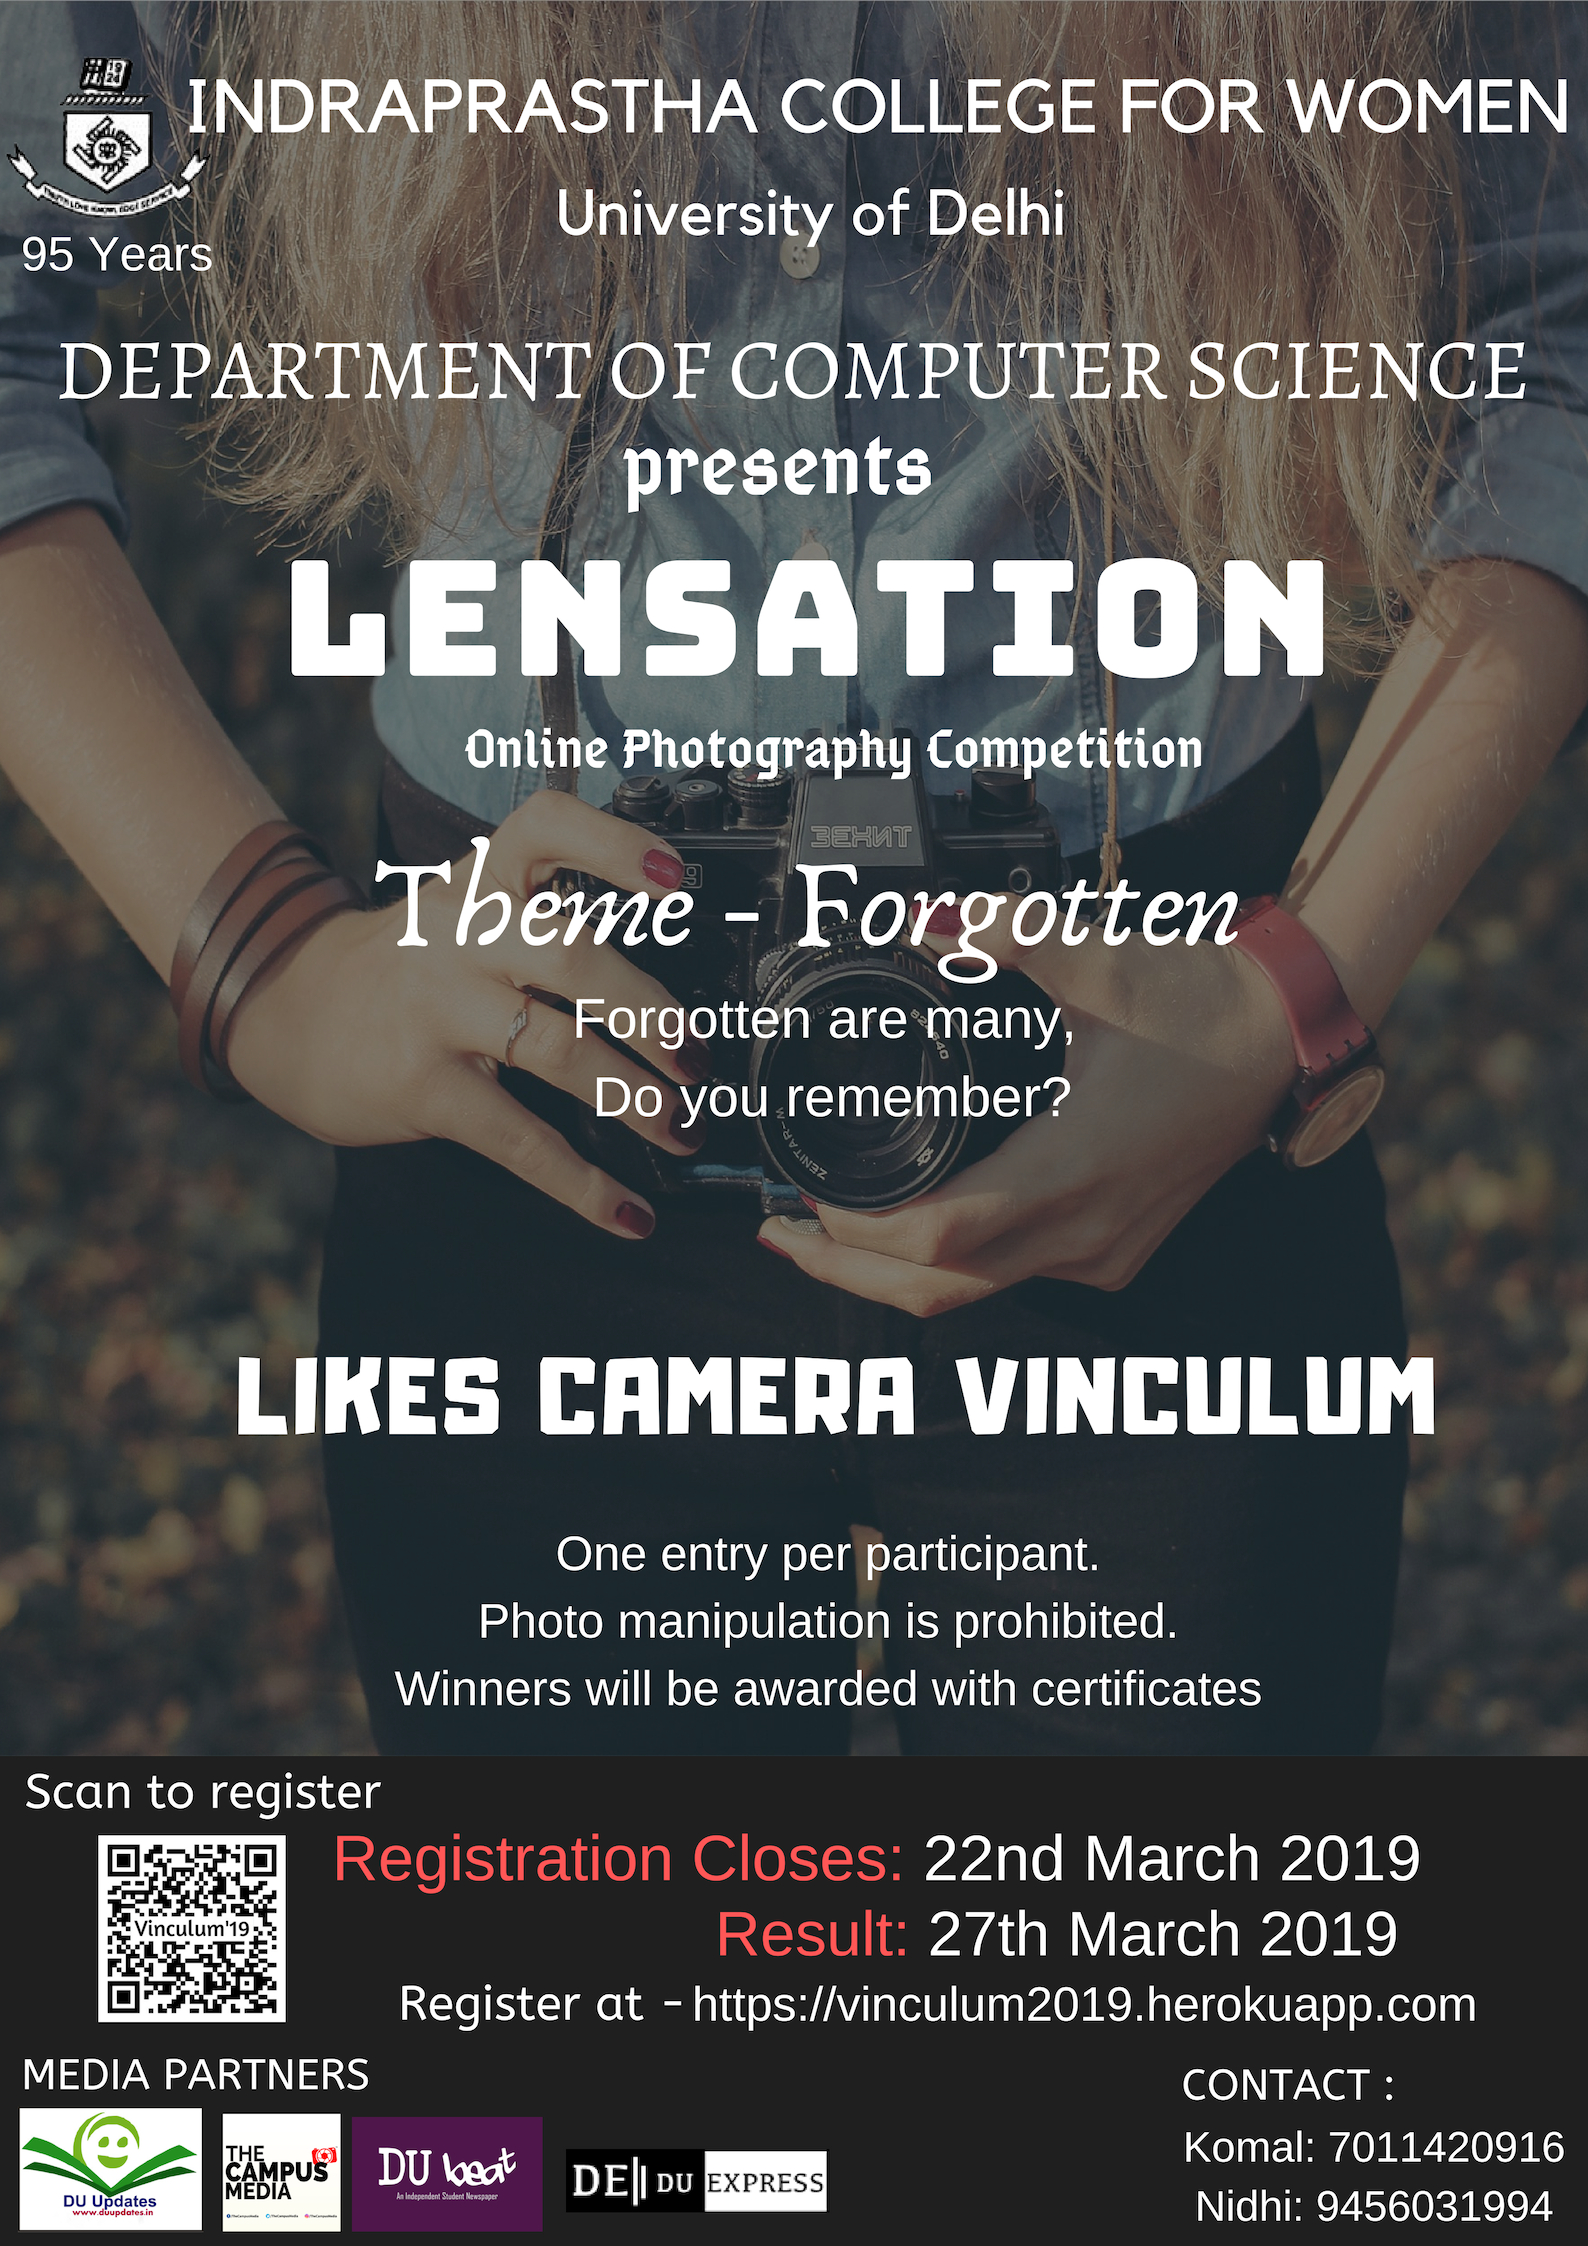 Lensation- The online photography competition by Indraprastha College for Women